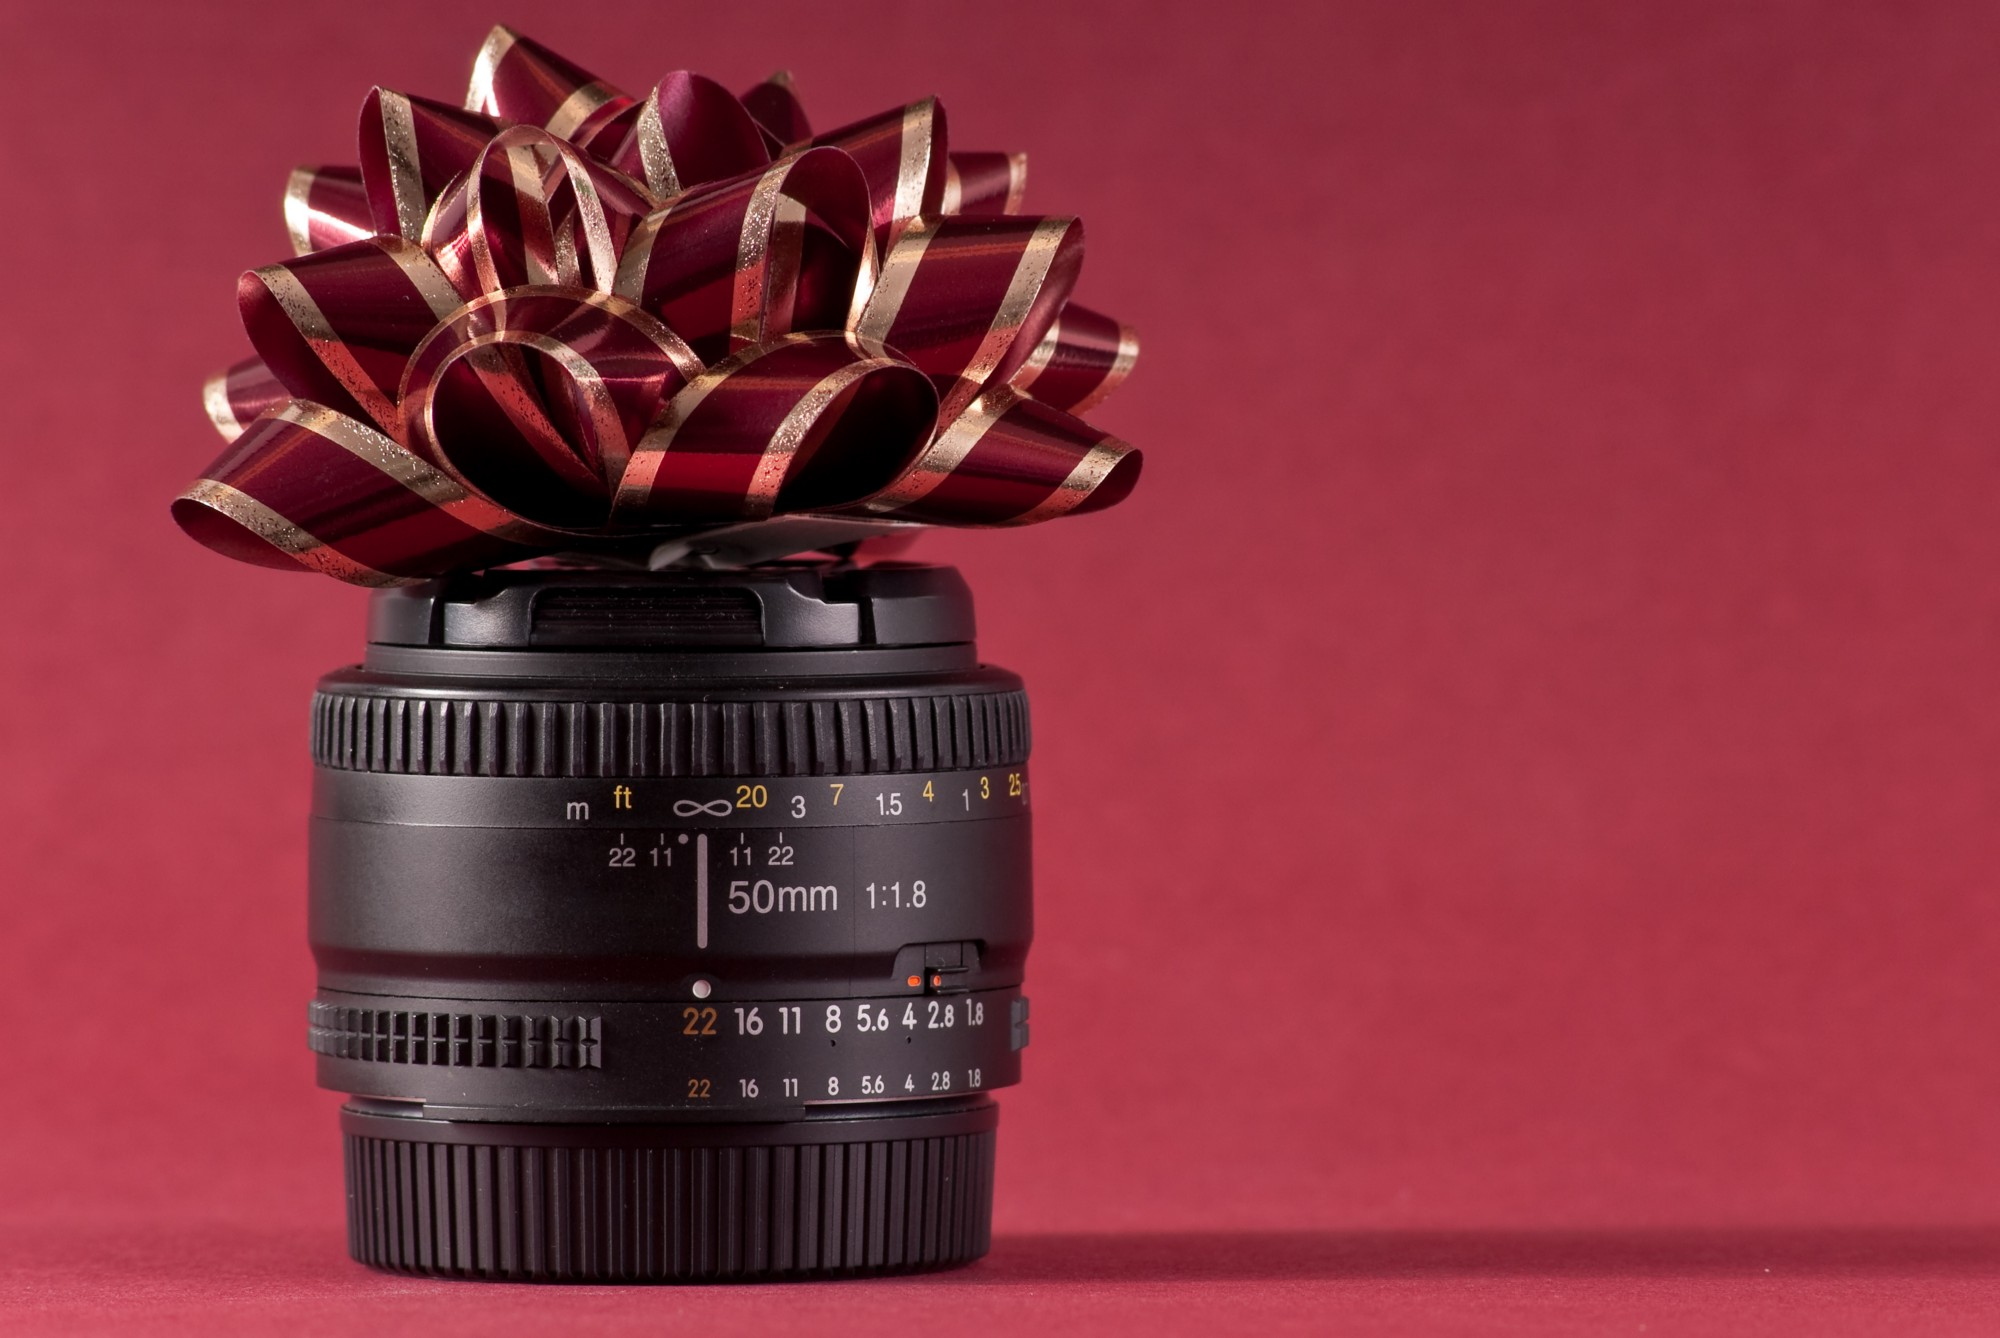 10 photography gift ideas from $10-$250 – photography secrets – medium